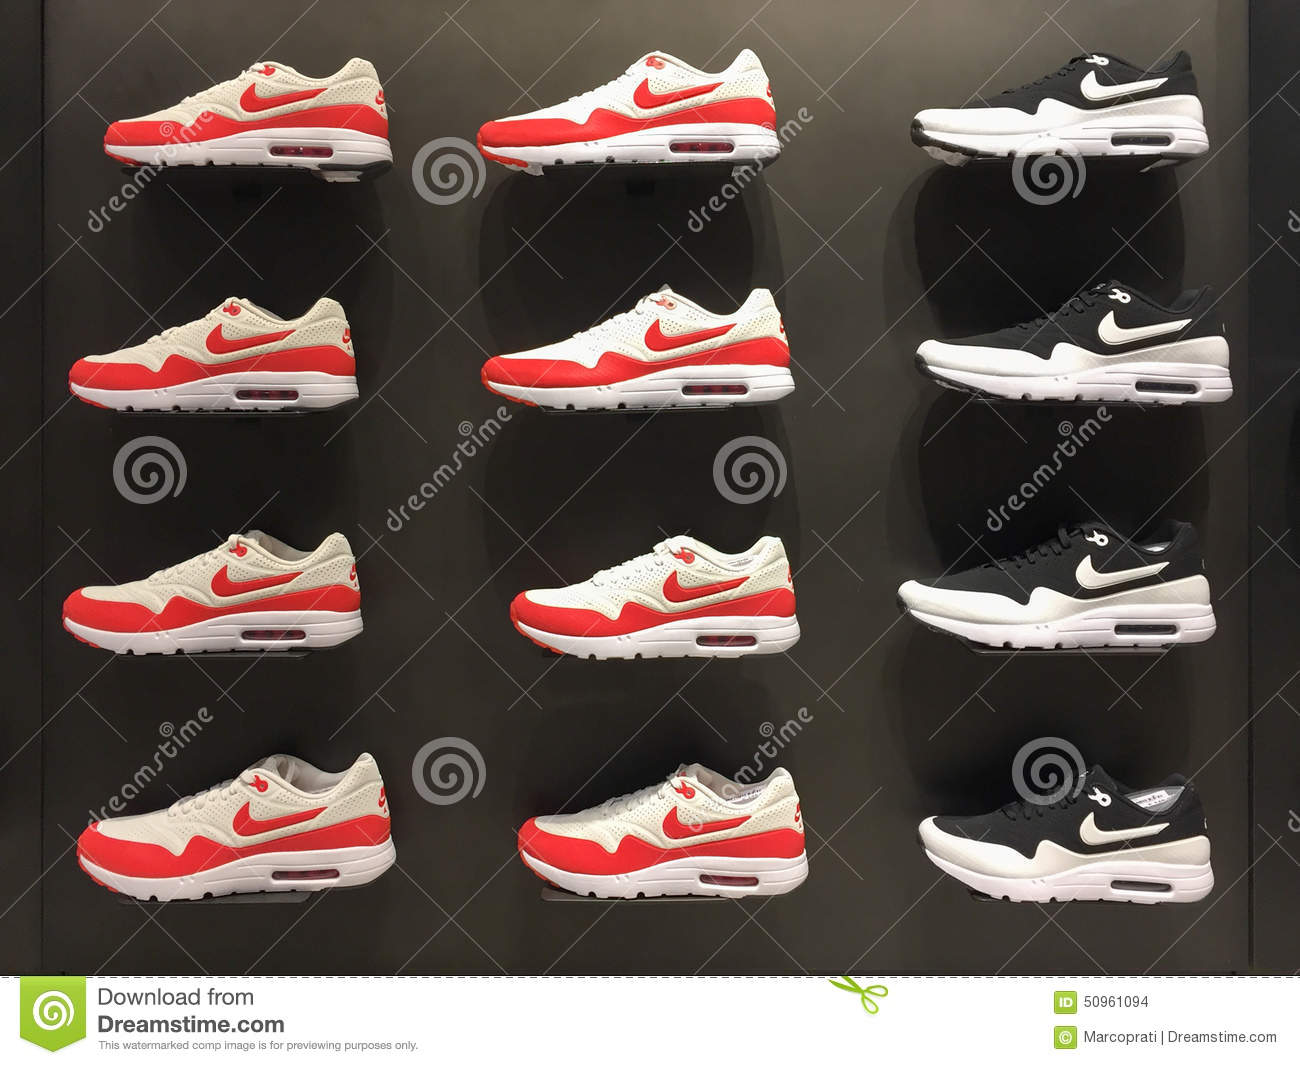 nike italy shoes